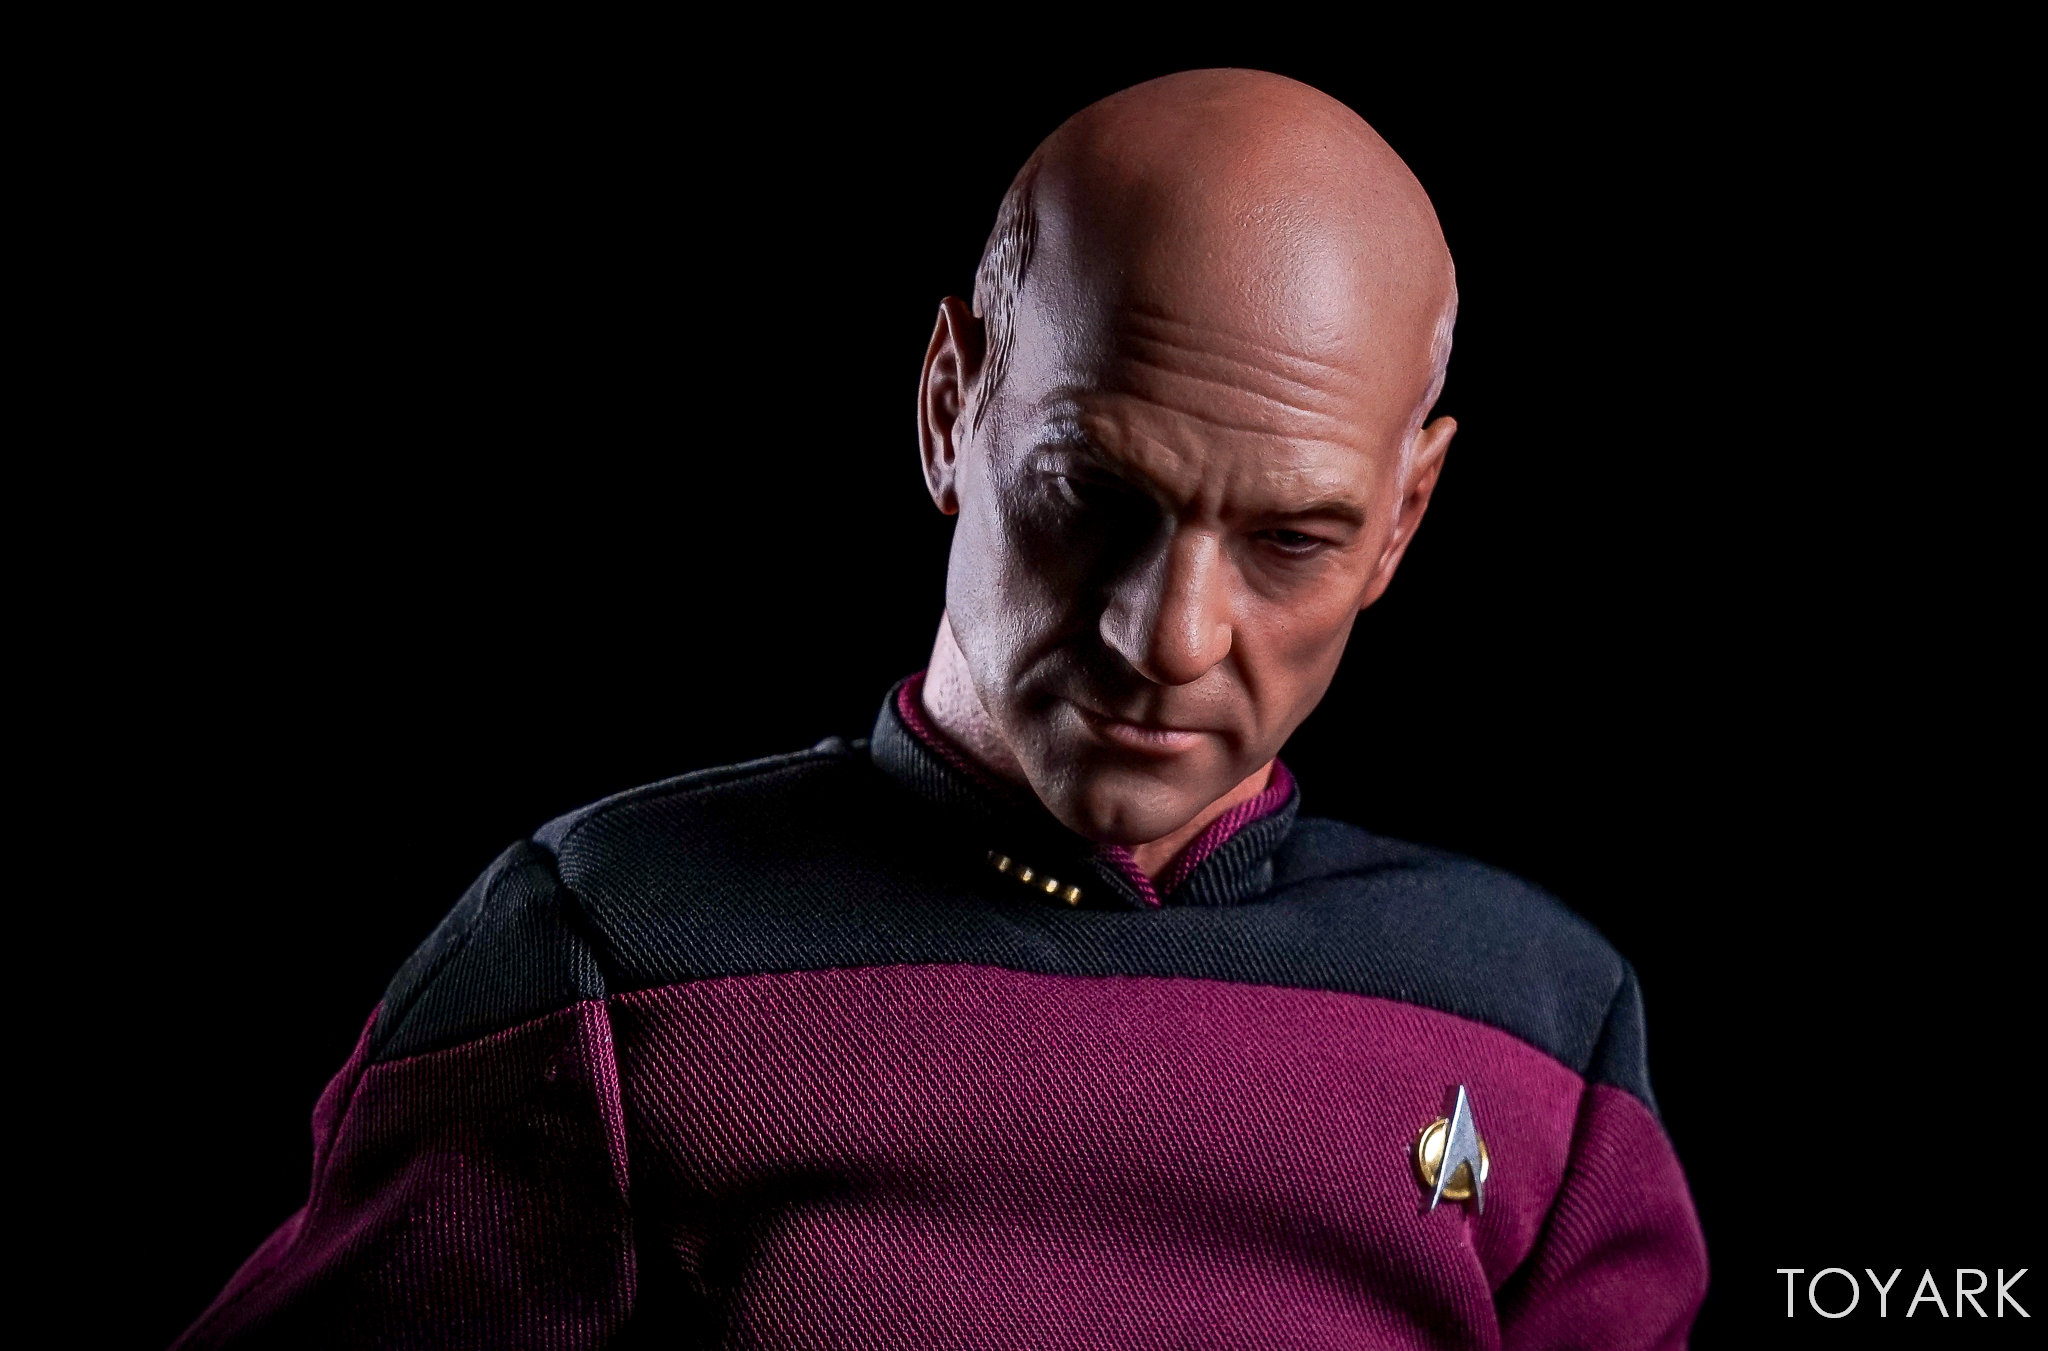 http://news.toyark.com/wp-content/uploads/sites/4/2017/10/Qmx-Star-Trek-TNG-Captain-Picard-049.jpg